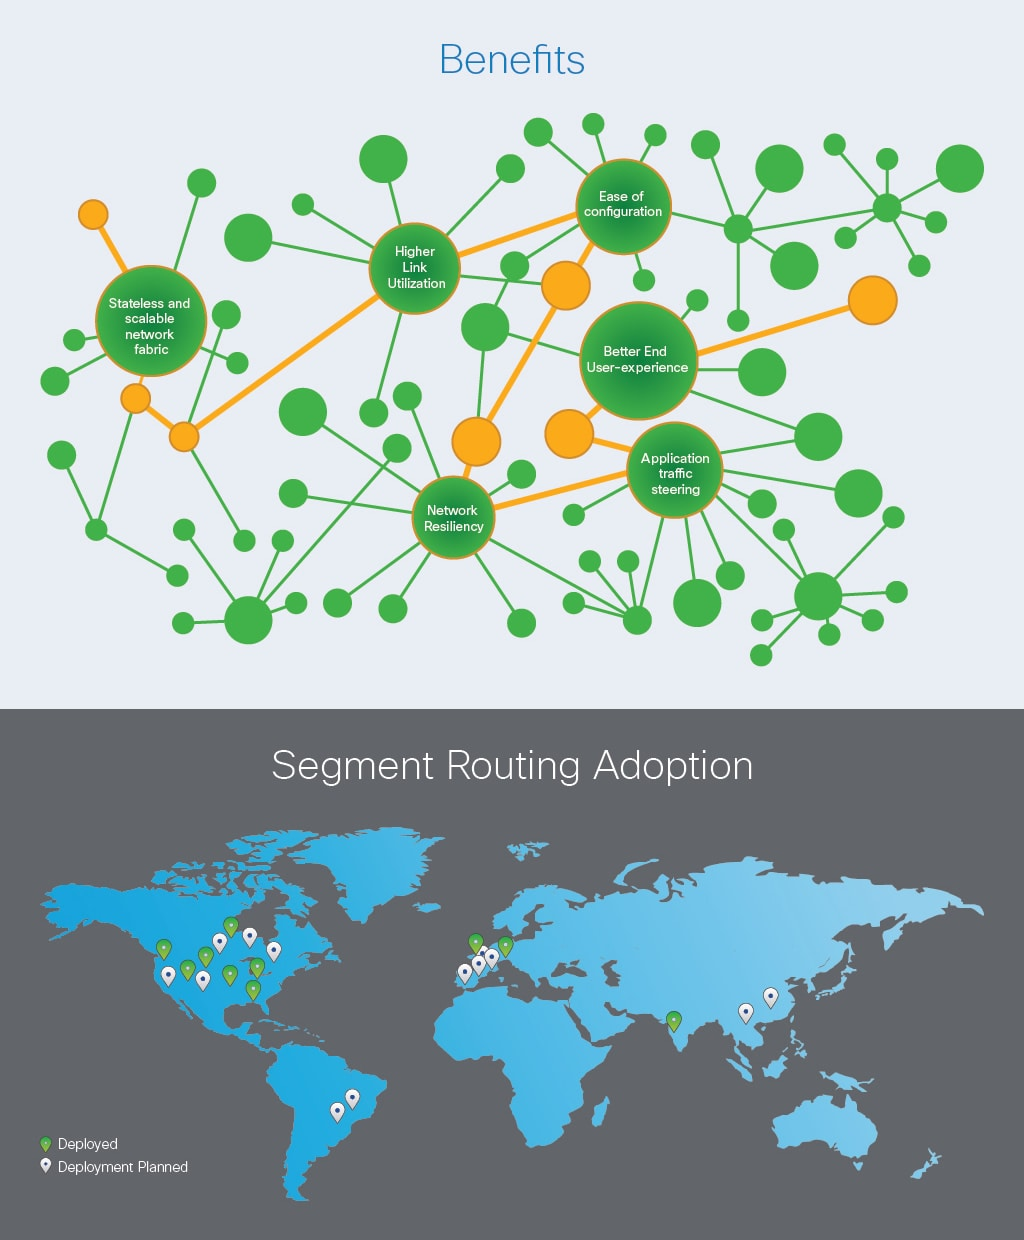 Benefits and Segment Routing Adoption